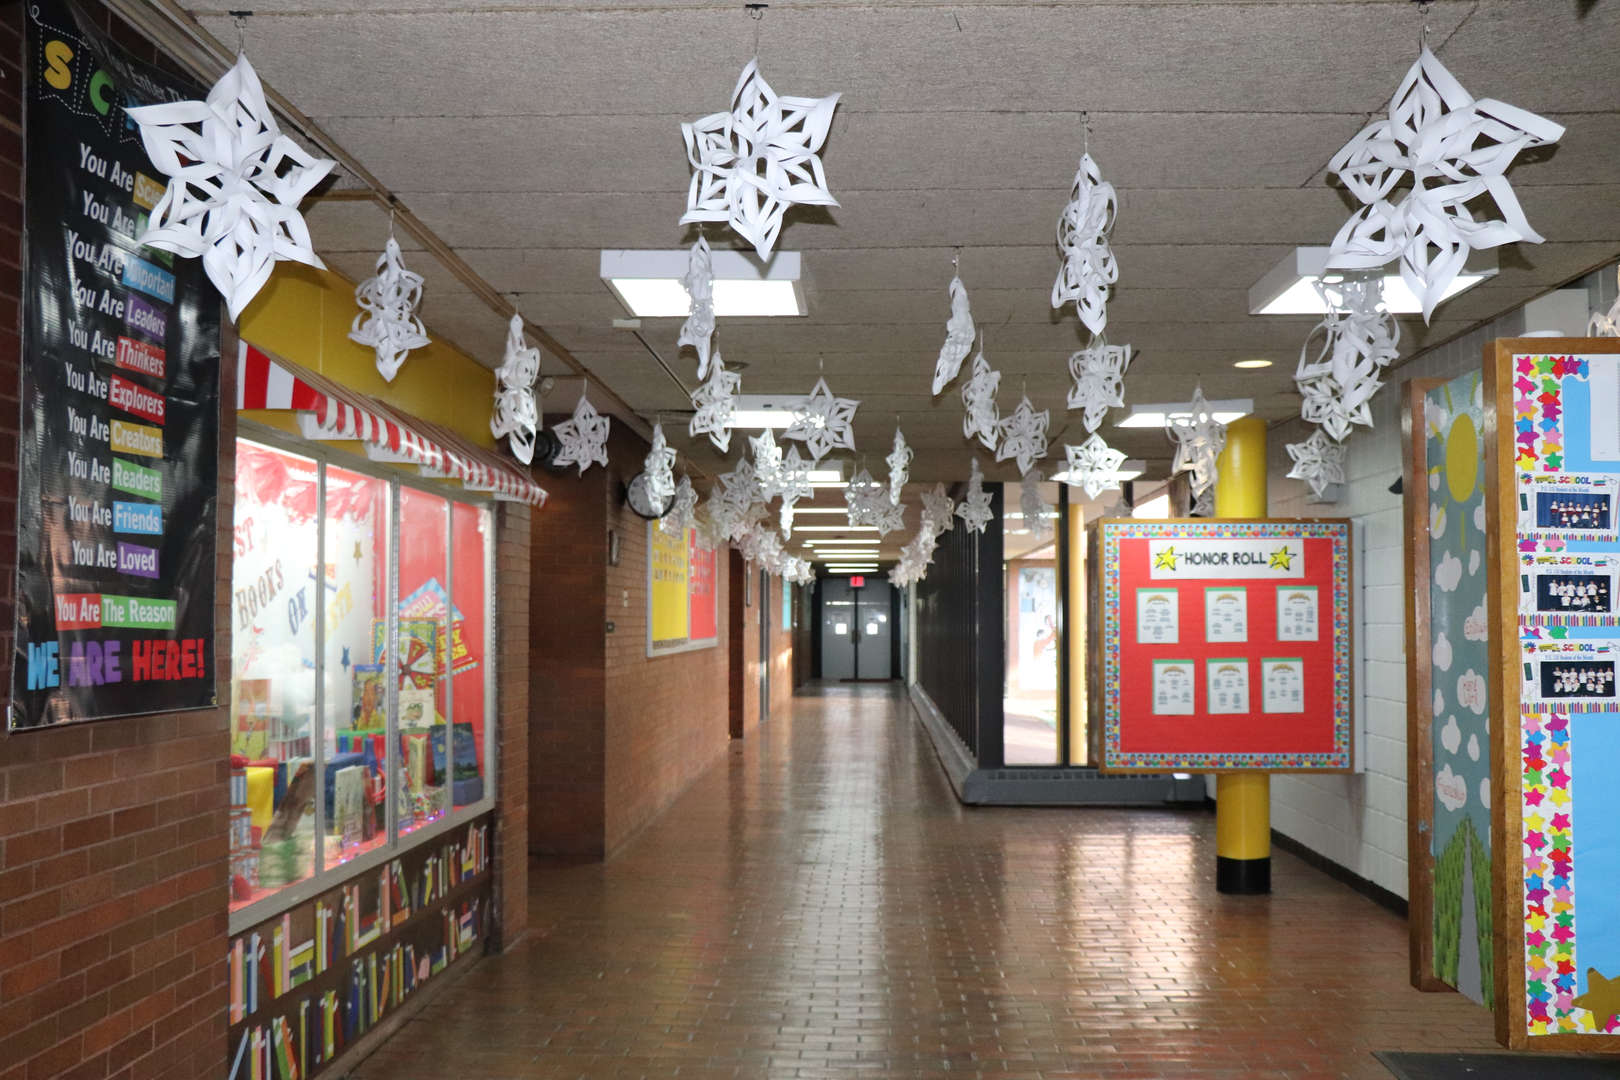 The paper snowflakes that lined the main lobby.